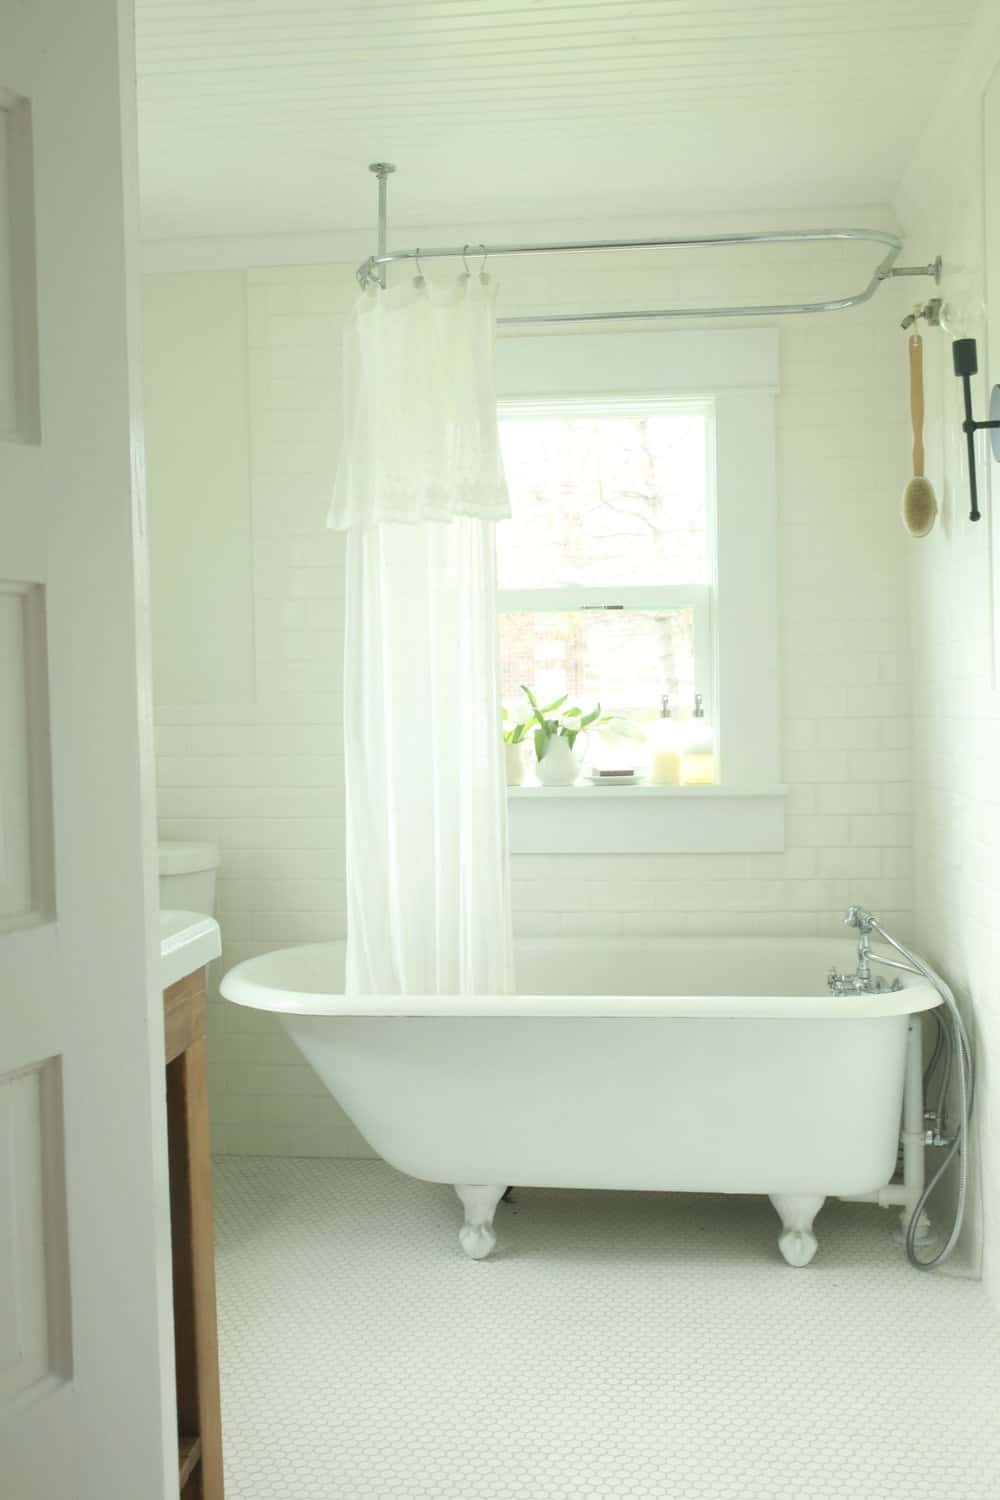 Refinishing a Clawfoot Tub Before and After - Farmhouse on Boone